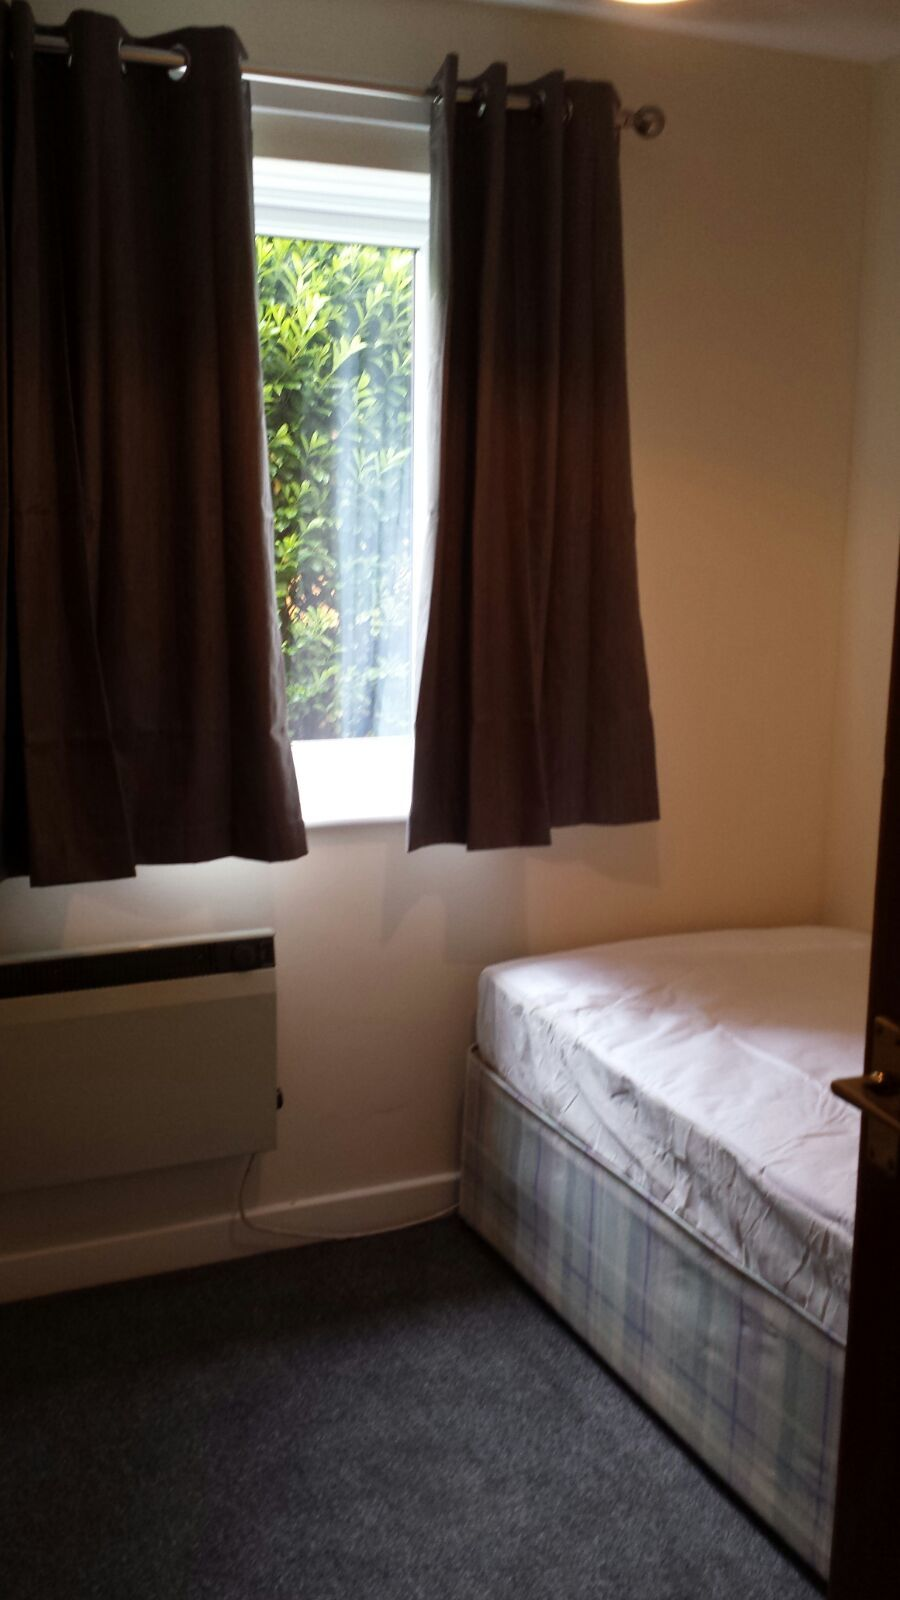 a small box room with a single bed which covers half the room, spanning from wall to wall.